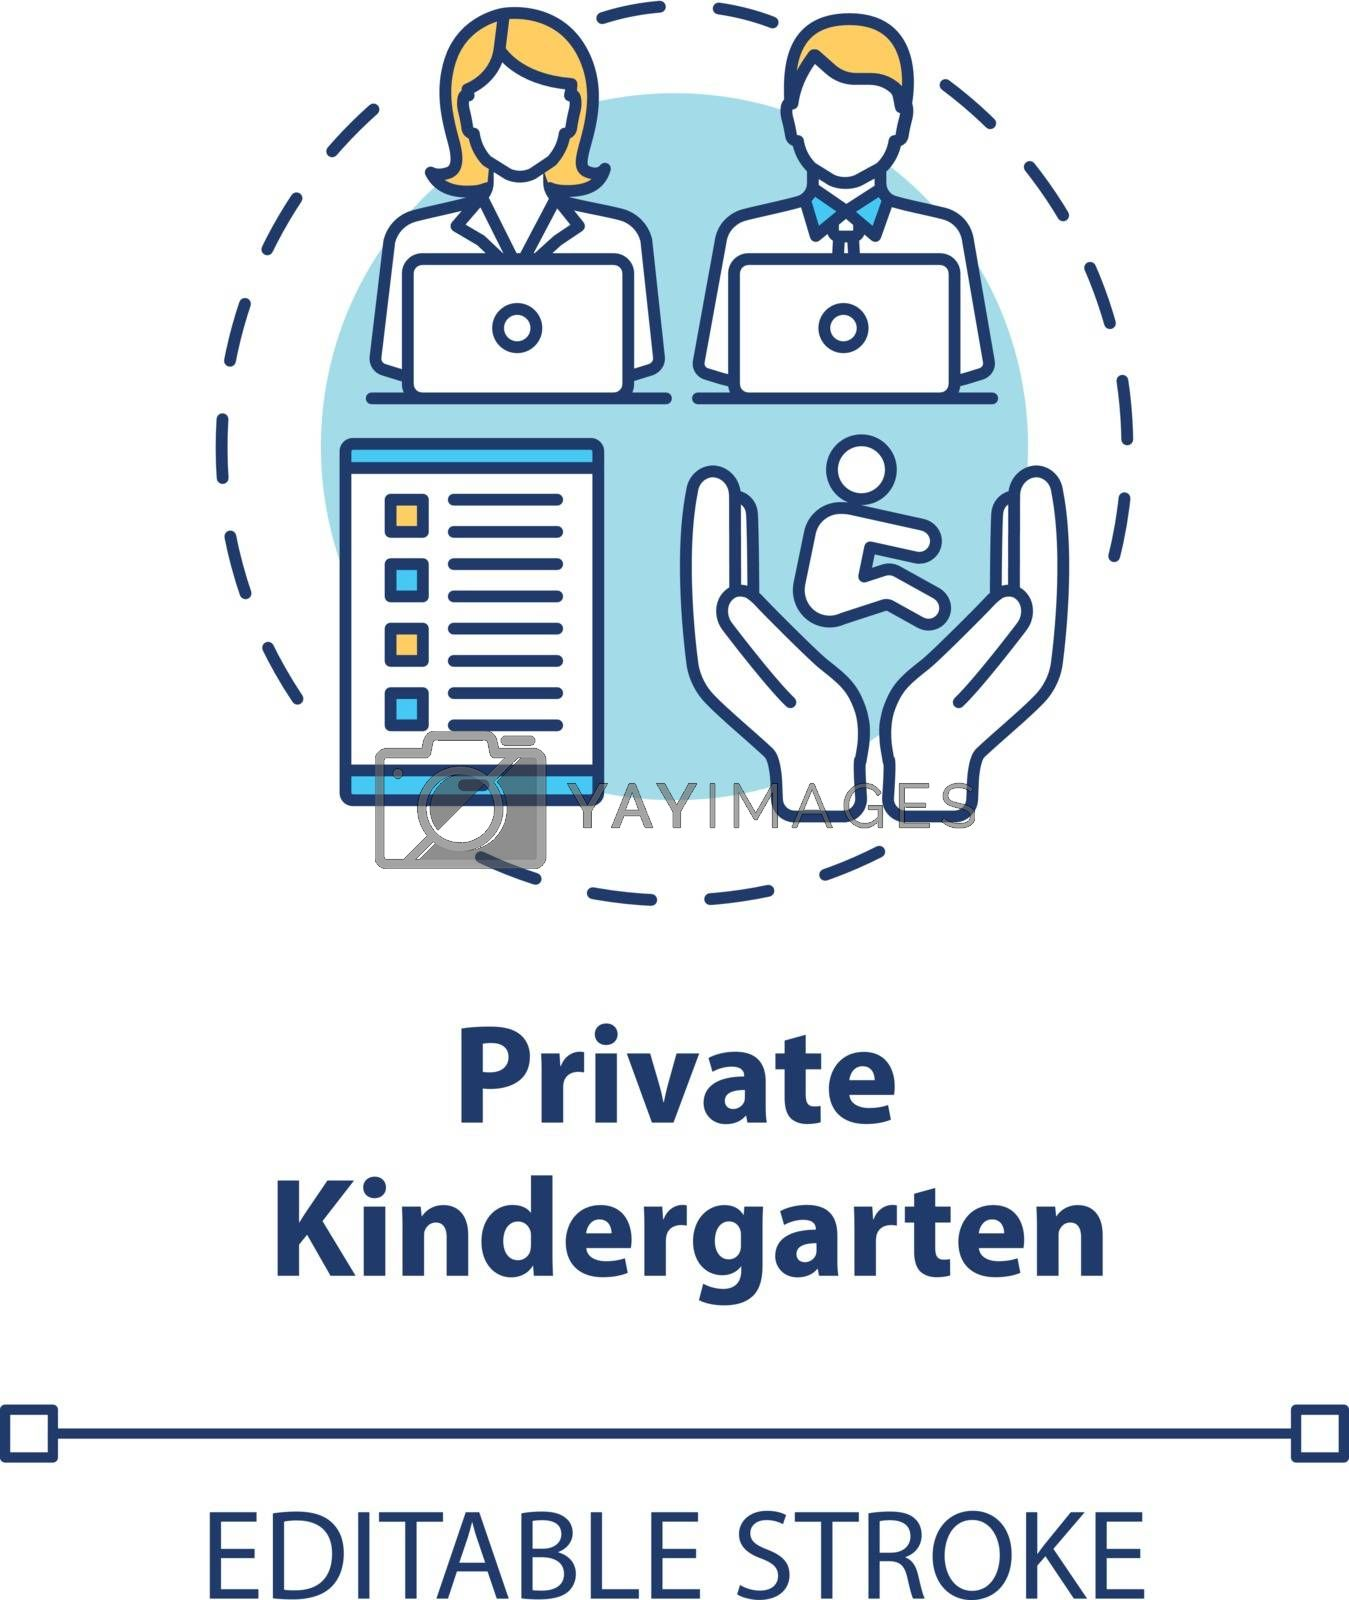 Private kindergarten concept icon by bsd